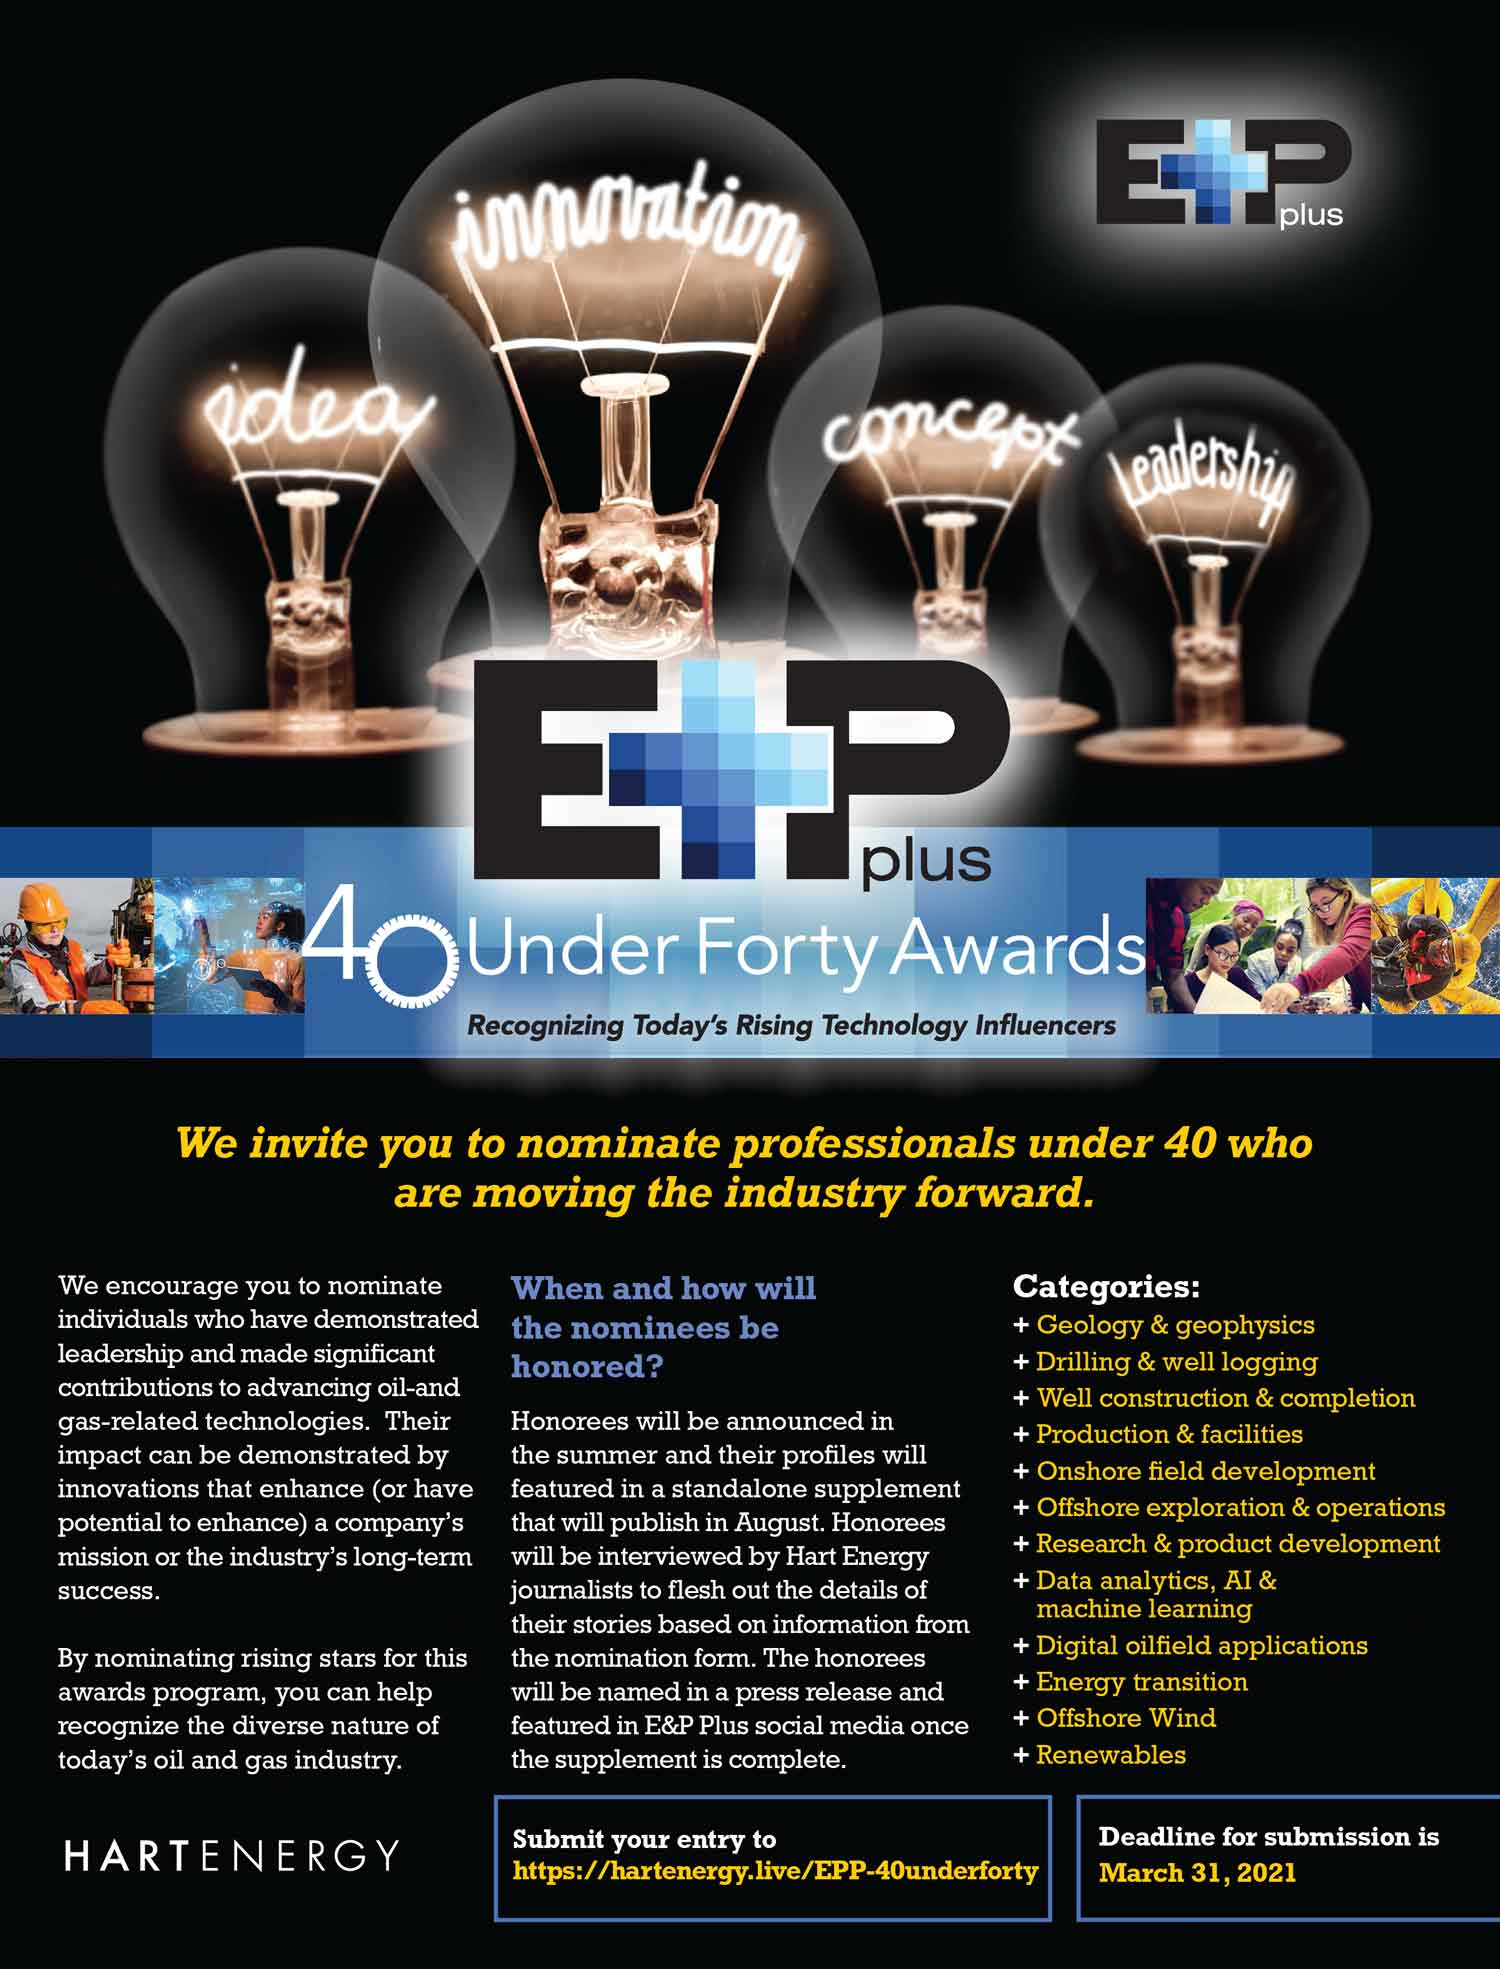 E+P Plus 40 Under Forty Awards Advertisement